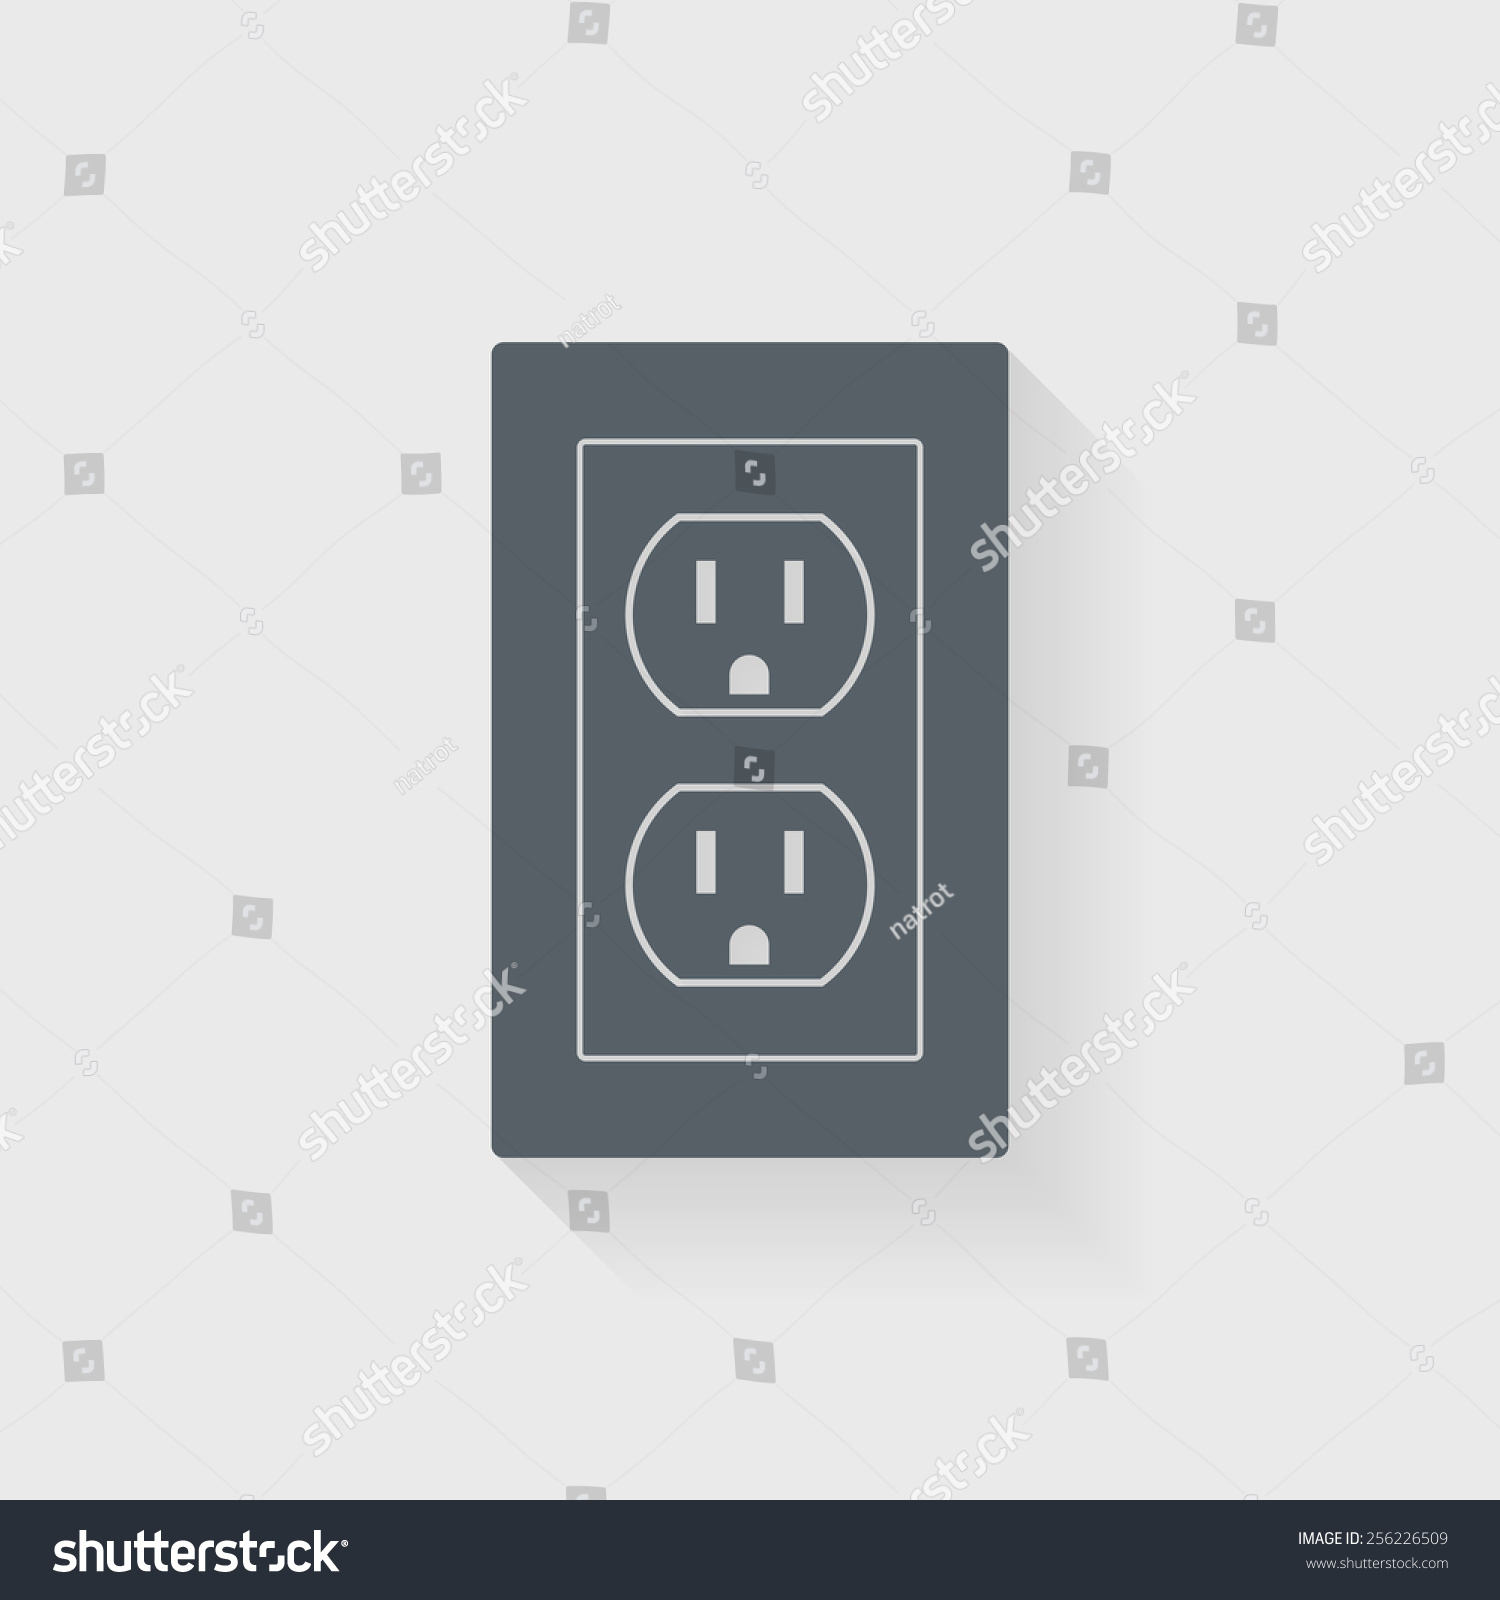 Lovely Standard Us Power Outlet Voltage Pictures Inspiration ...